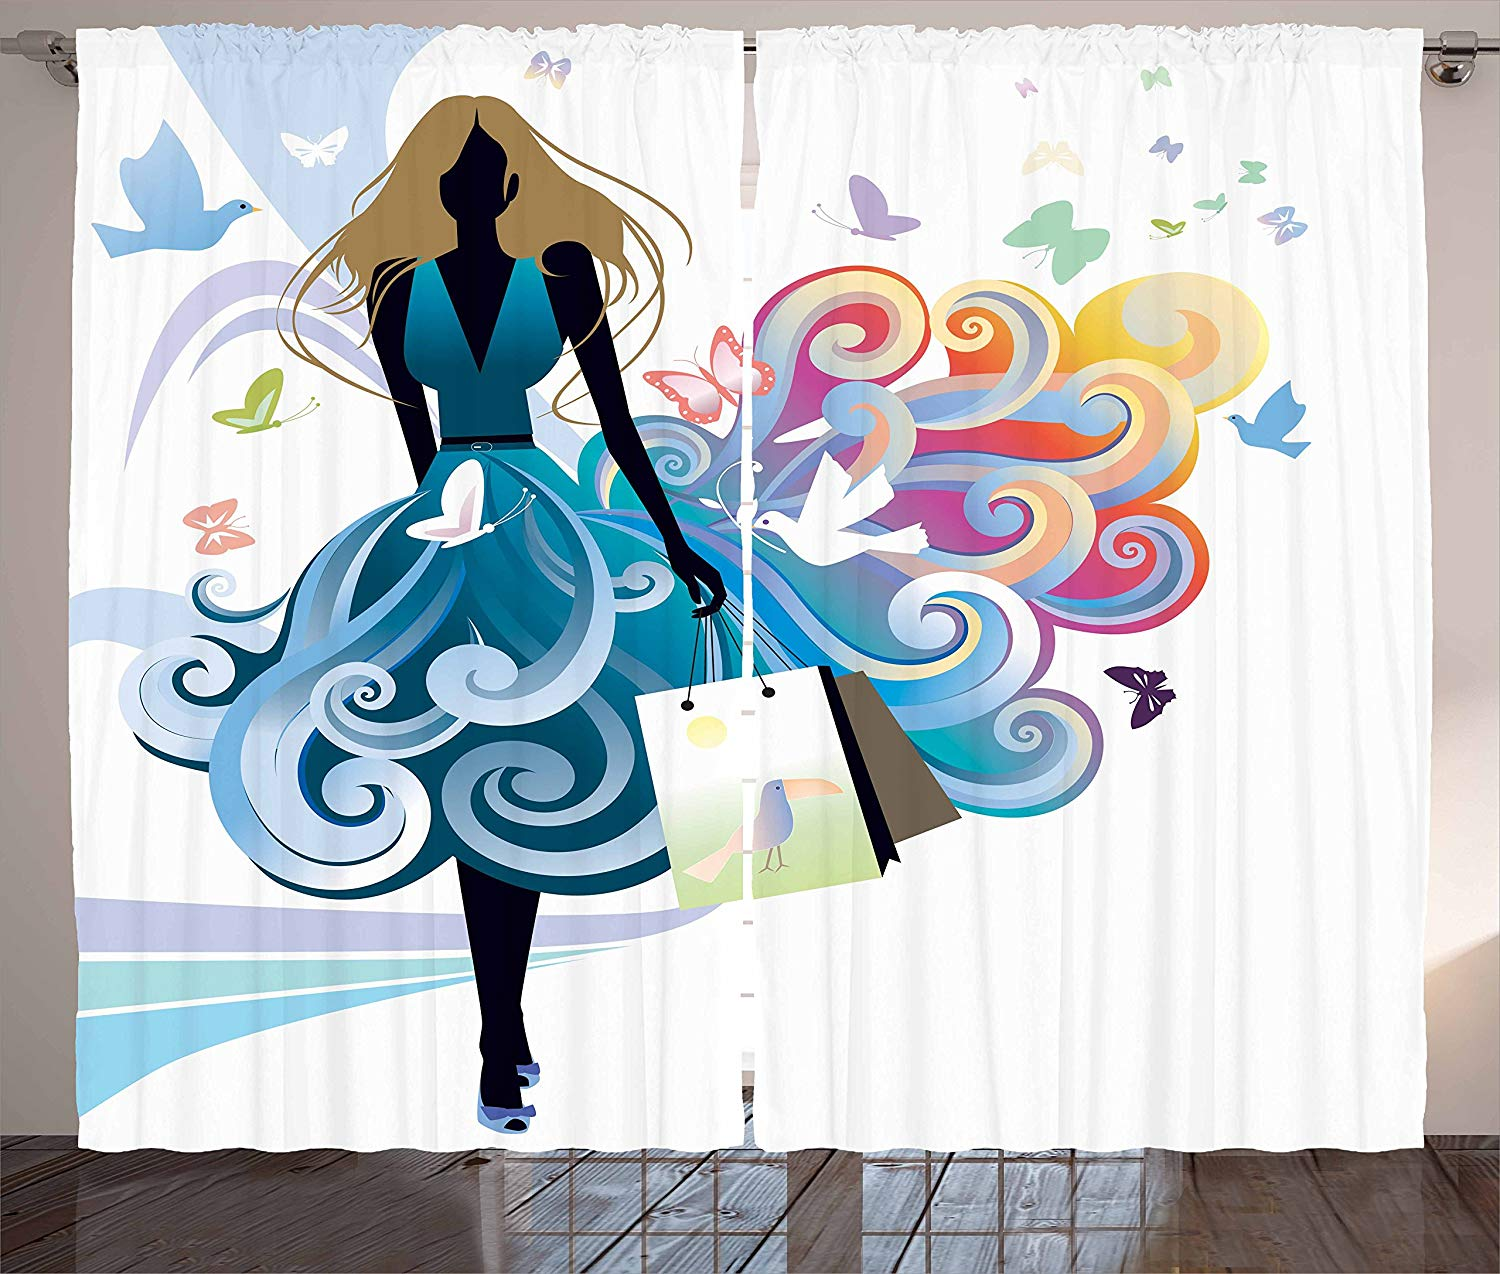 Image of: Contemporary Kitchen Curtains Young Woman Silhouette With Shopping Bags Fantasy Skirt Butterflies Fashion Window Decor Panel Curtains Aliexpress